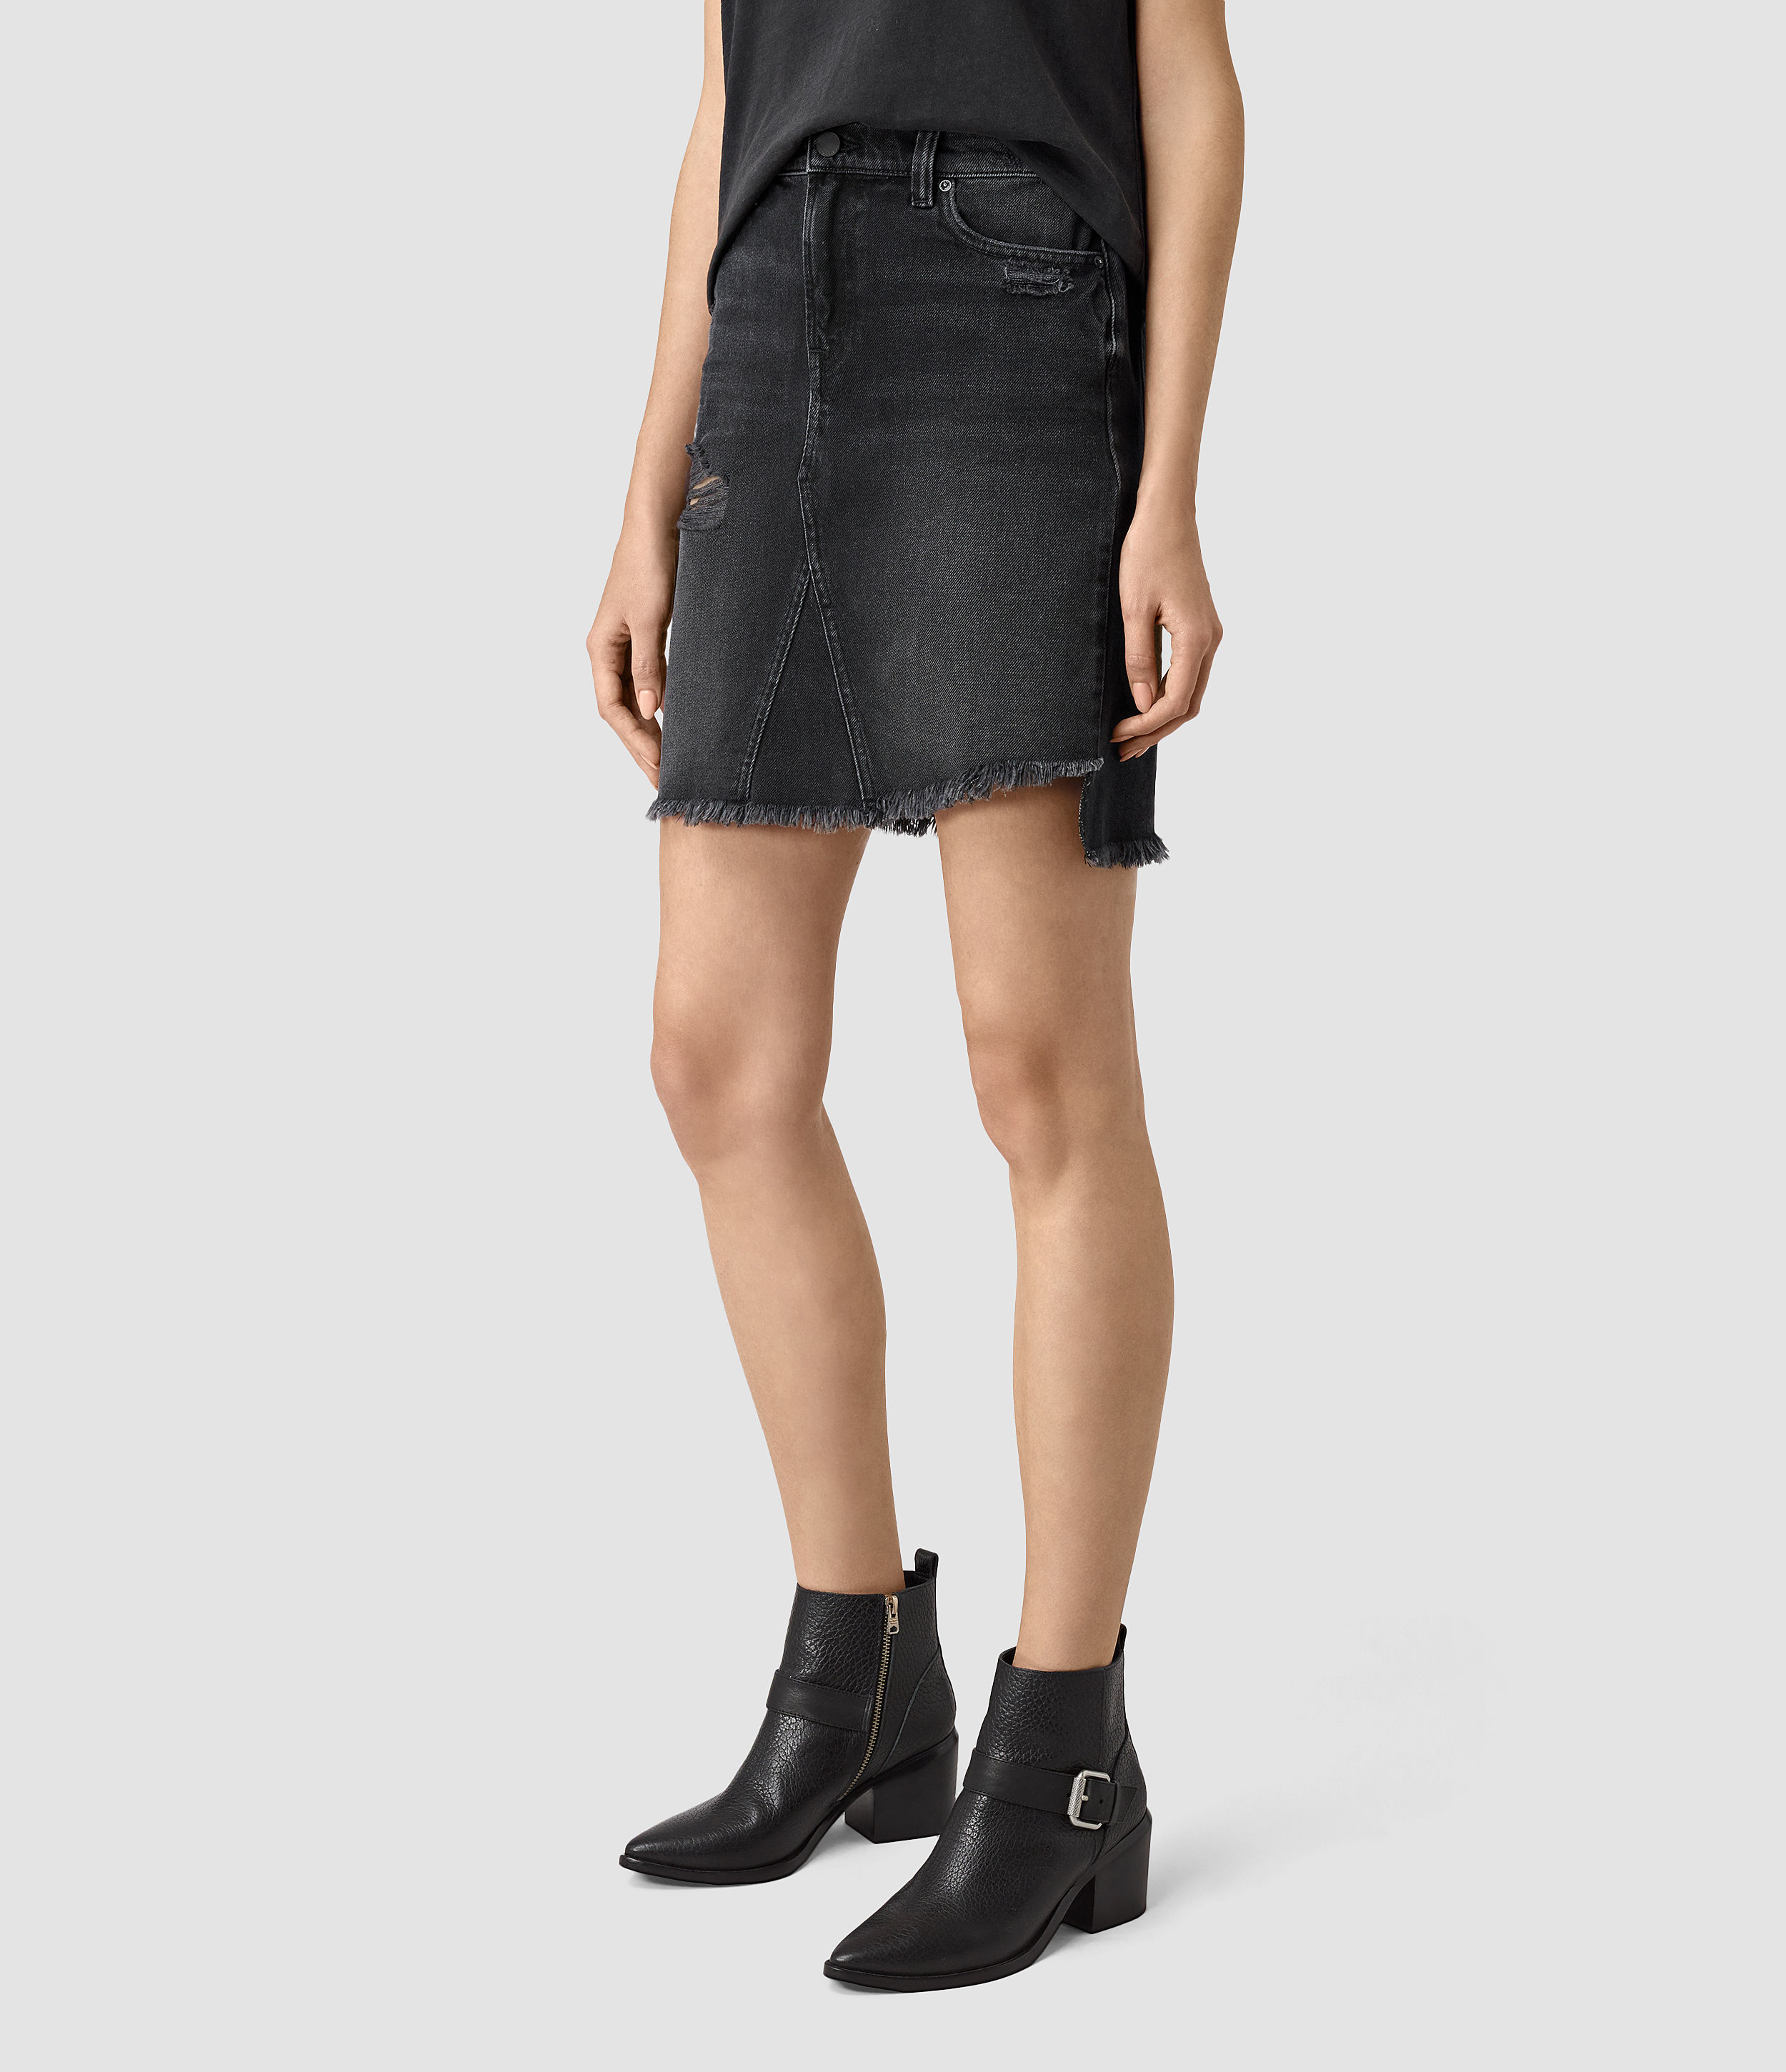 Allsaints Distressed Denim Skirt in Black | Lyst